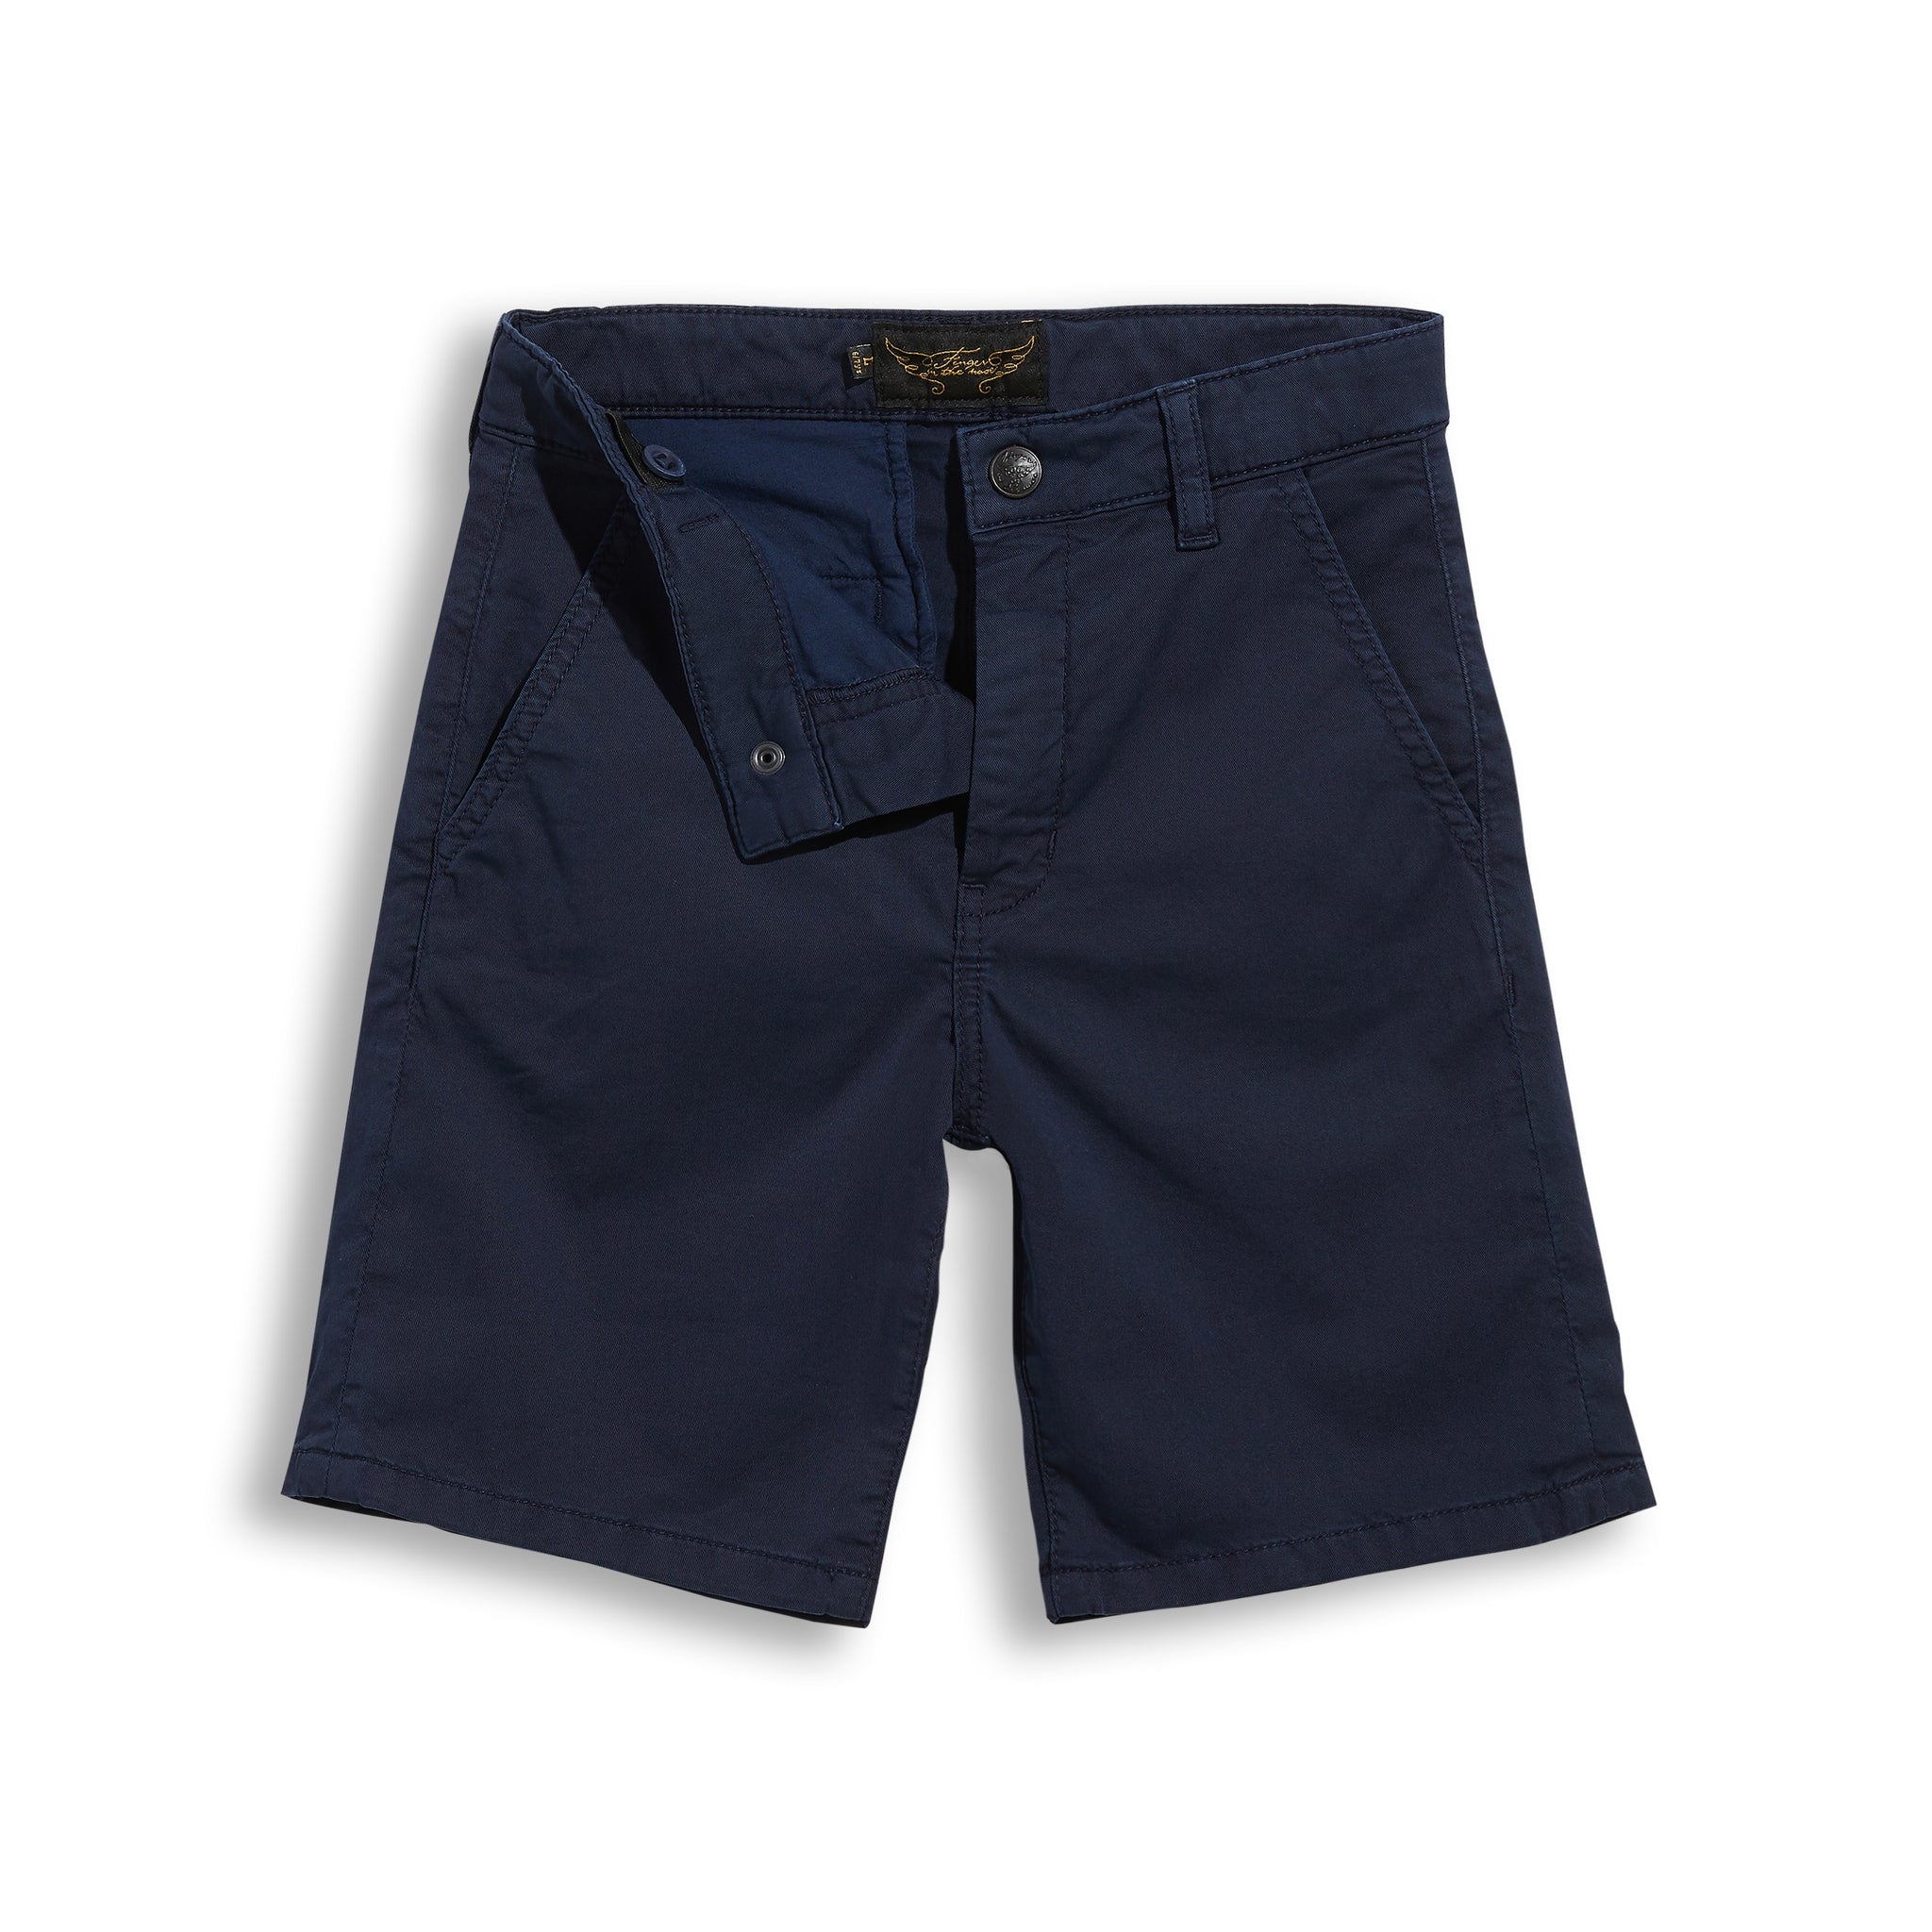 BIRDMAN Sailor Blue - Chino Fit Bermuda 3